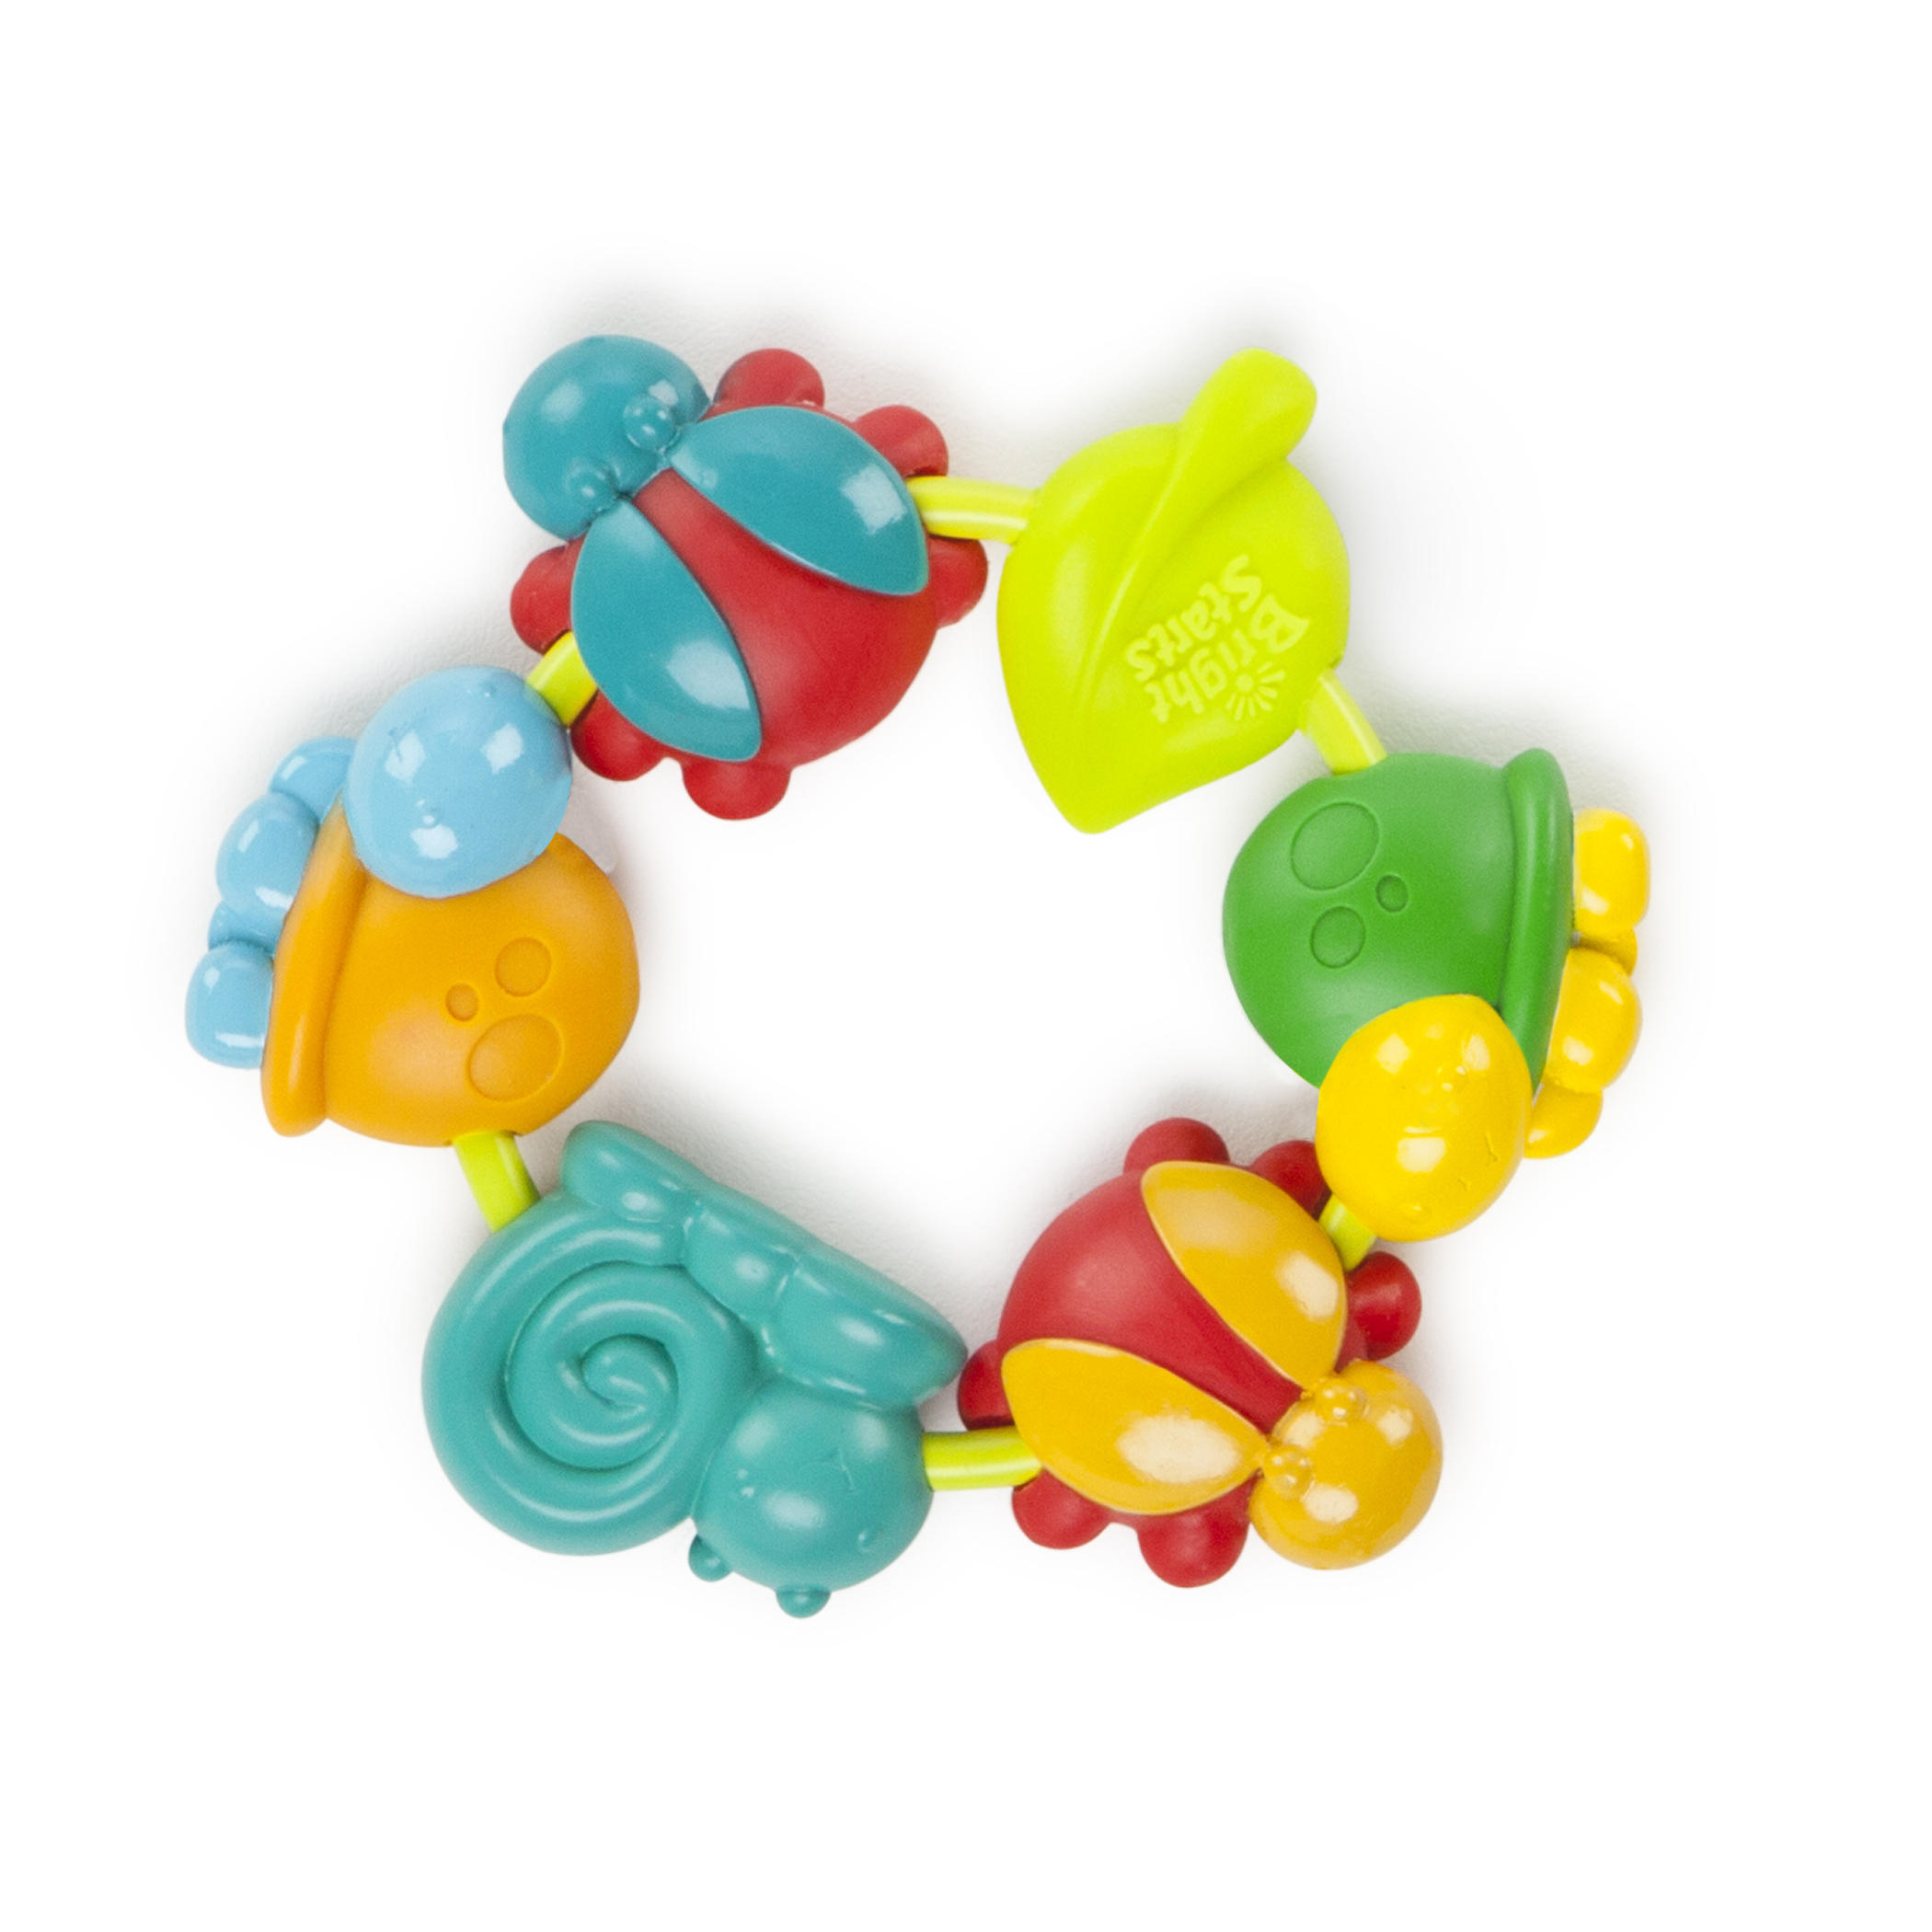 Bright Starts Buggy Bites Teether by Bright Starts